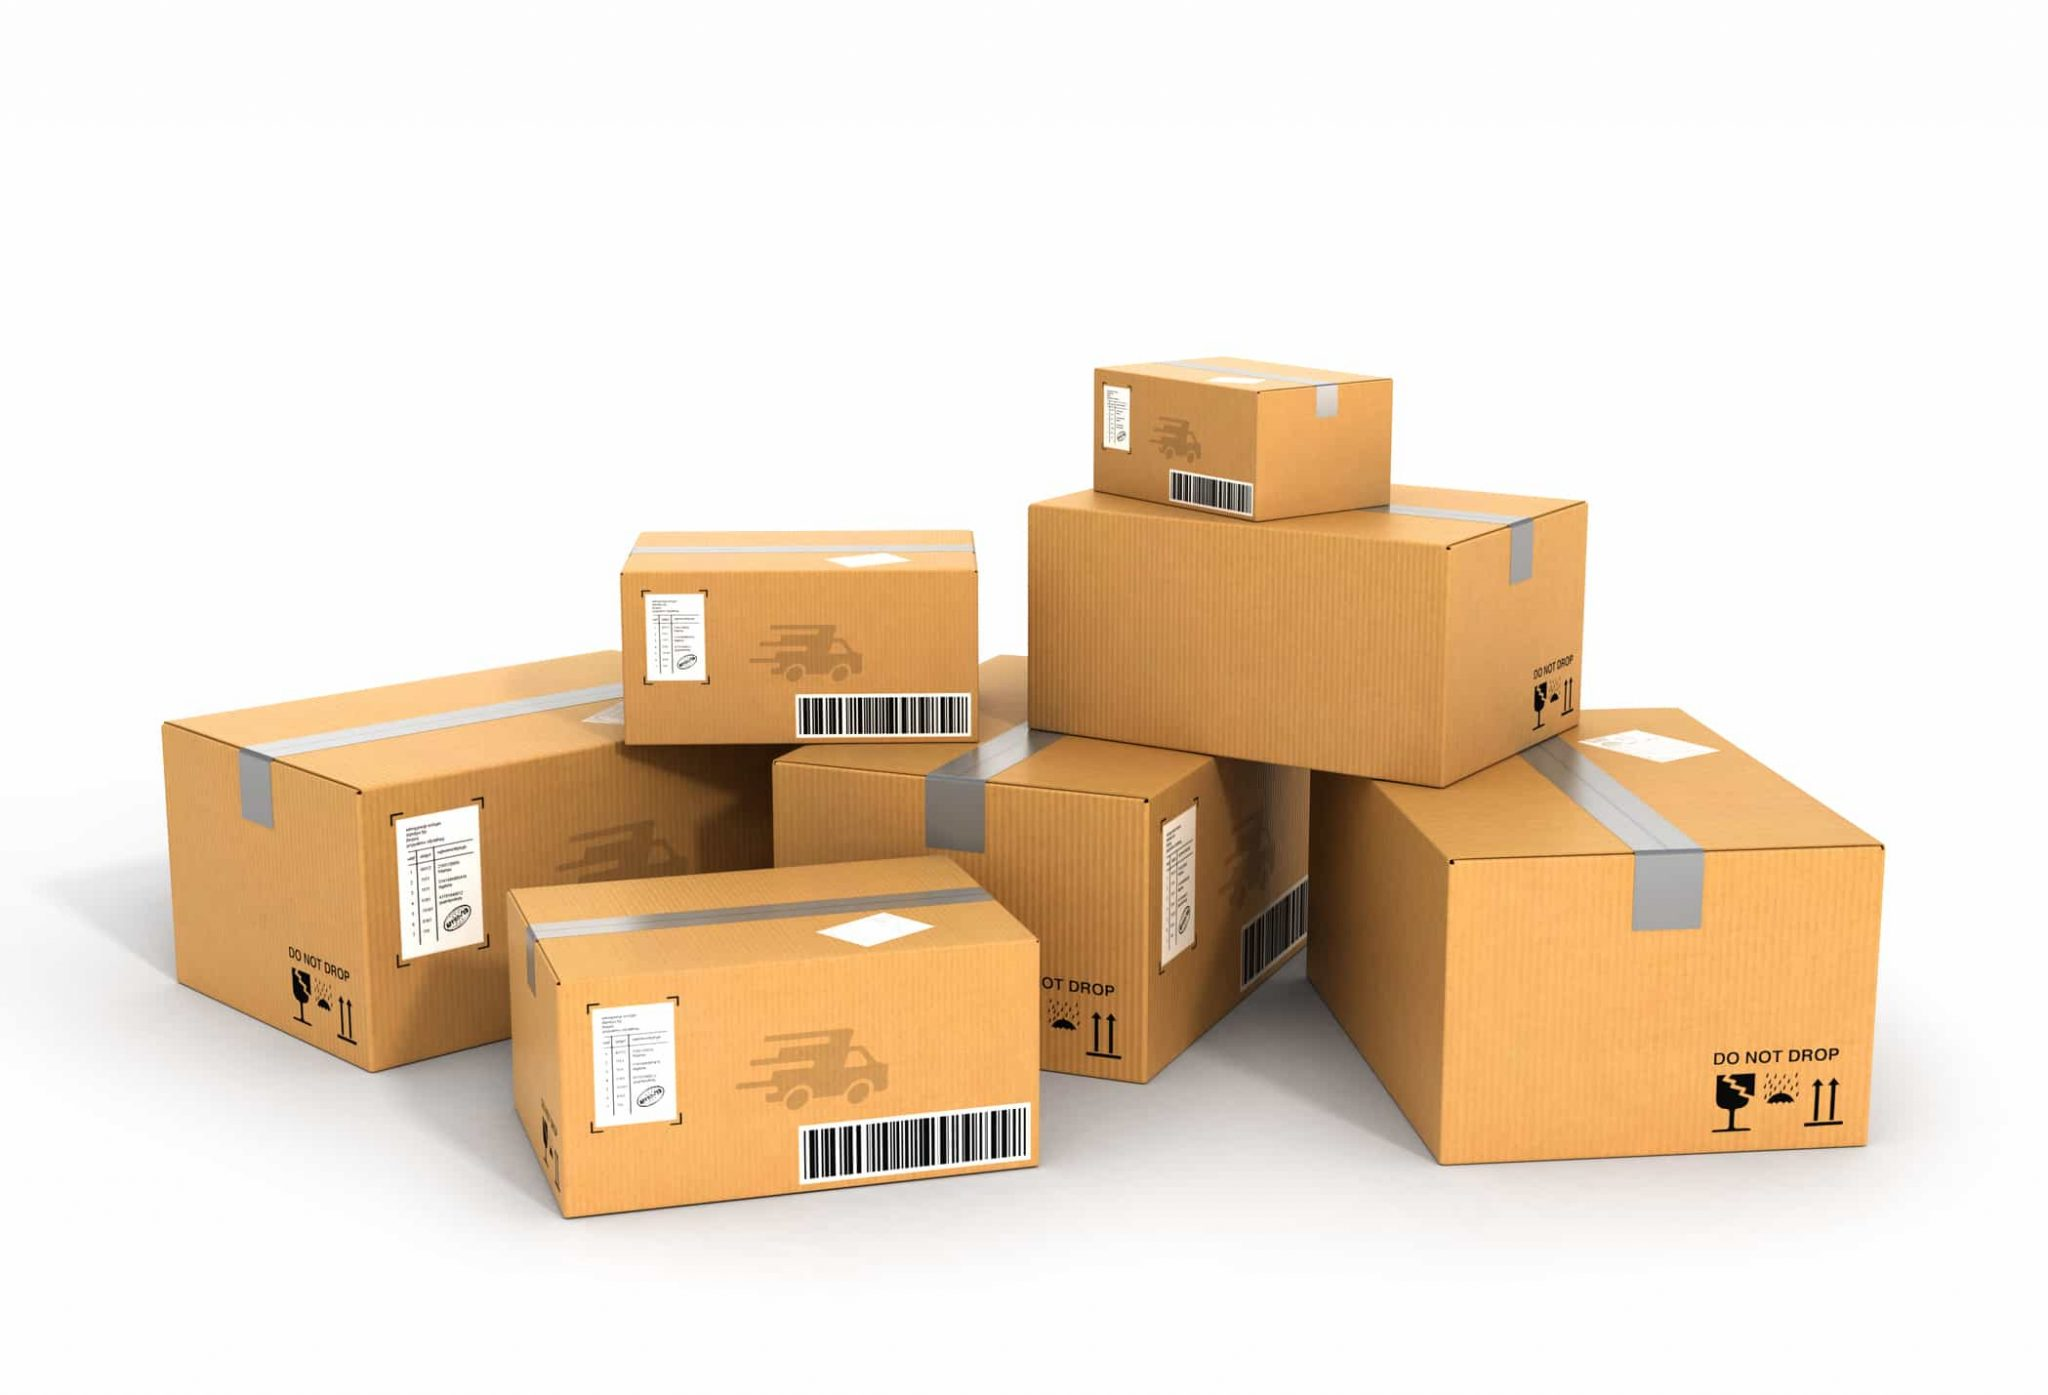 Leave a Lasting Impression with Shipping and Packaging